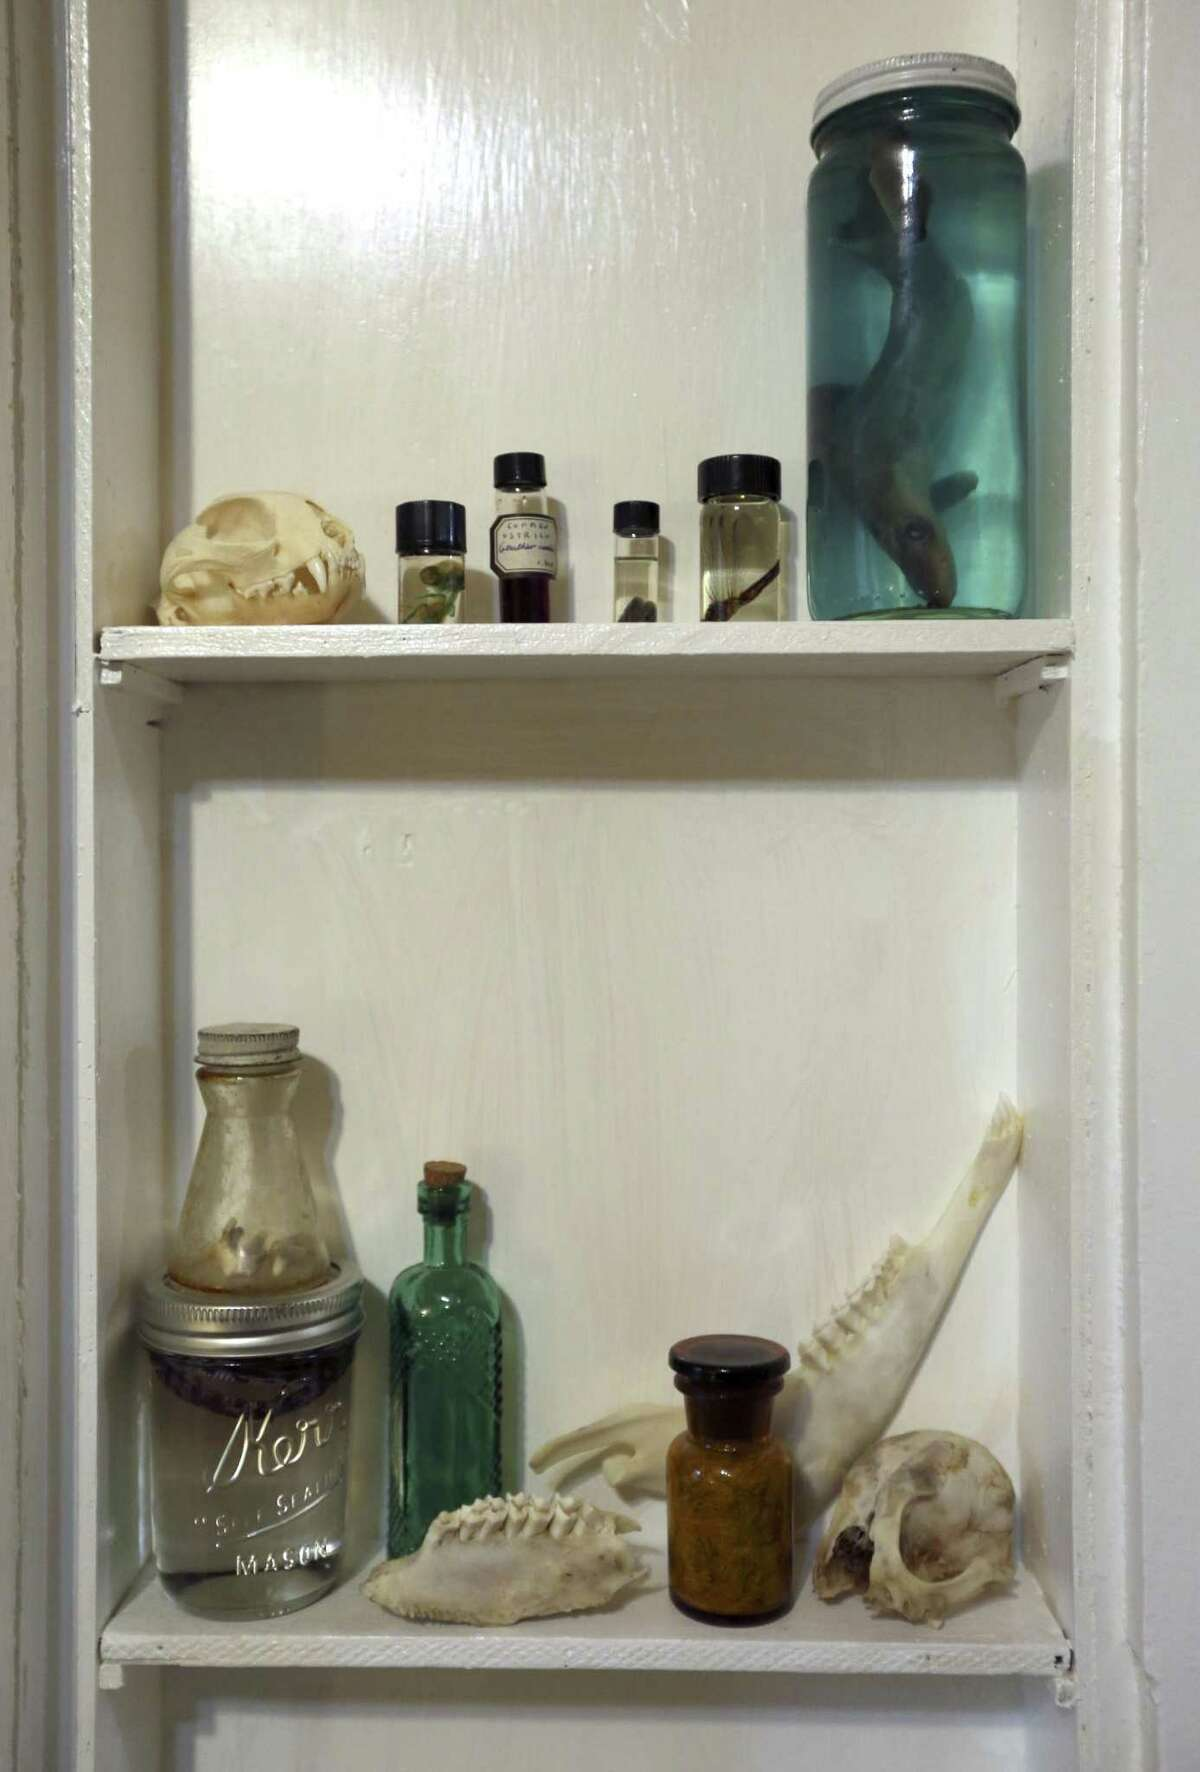 Stephen and Fred Garza-Guzman keep small objects like a preserved shark, upper right, and a jaw bone, lower, in a converted, built-in ironing board nook in their bedroom.